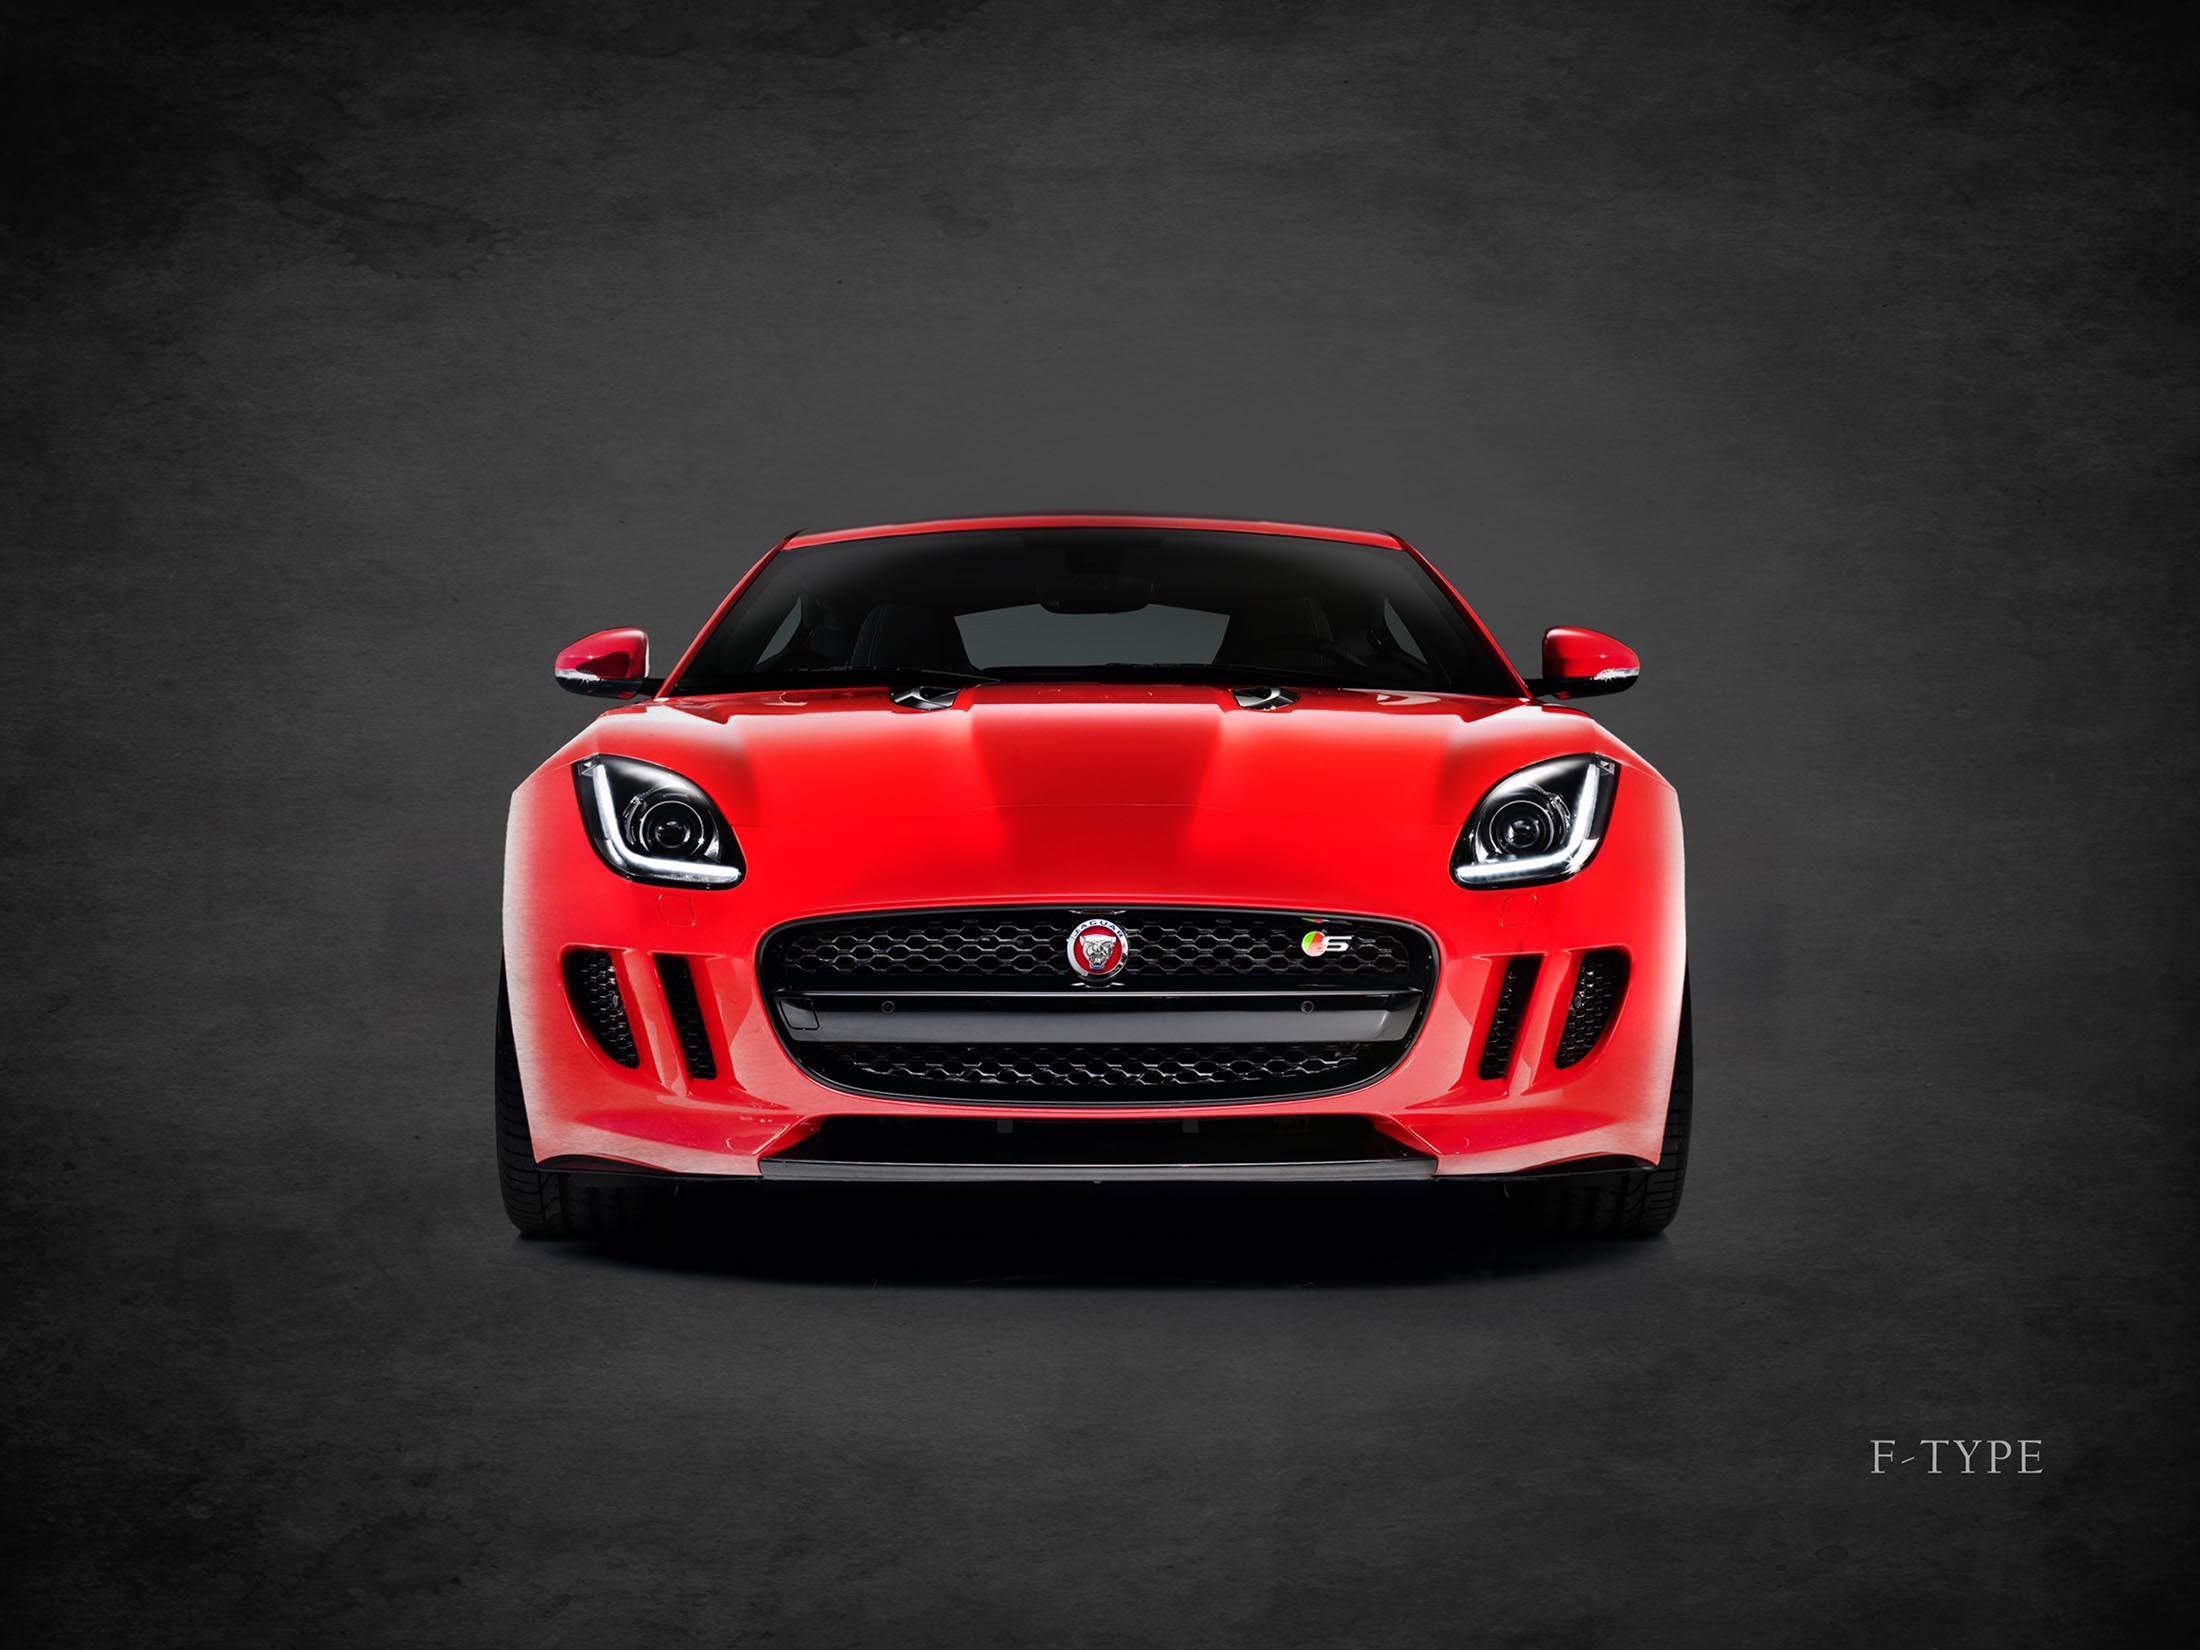 JAGUAR F-TYPE FRONT